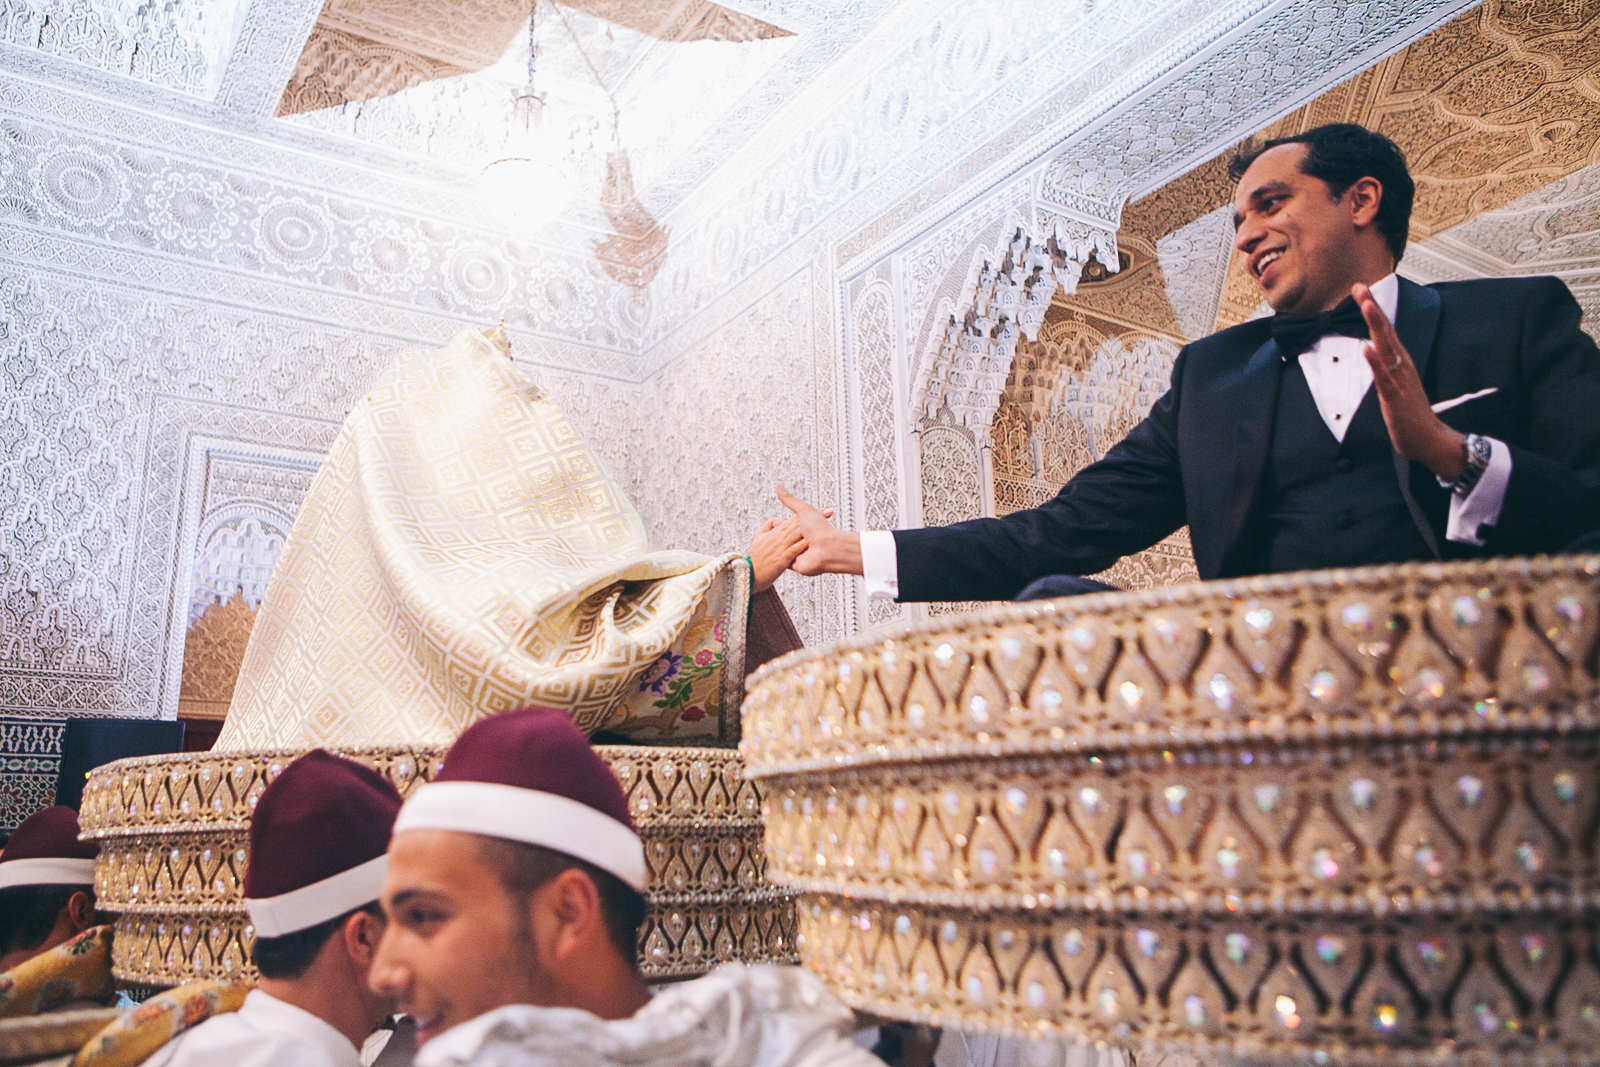 traditional_moroccan_wedding_photographry_casablanca_morocco_houda_vivek_ebony_siovhan_bokeh_photography_121.jpg